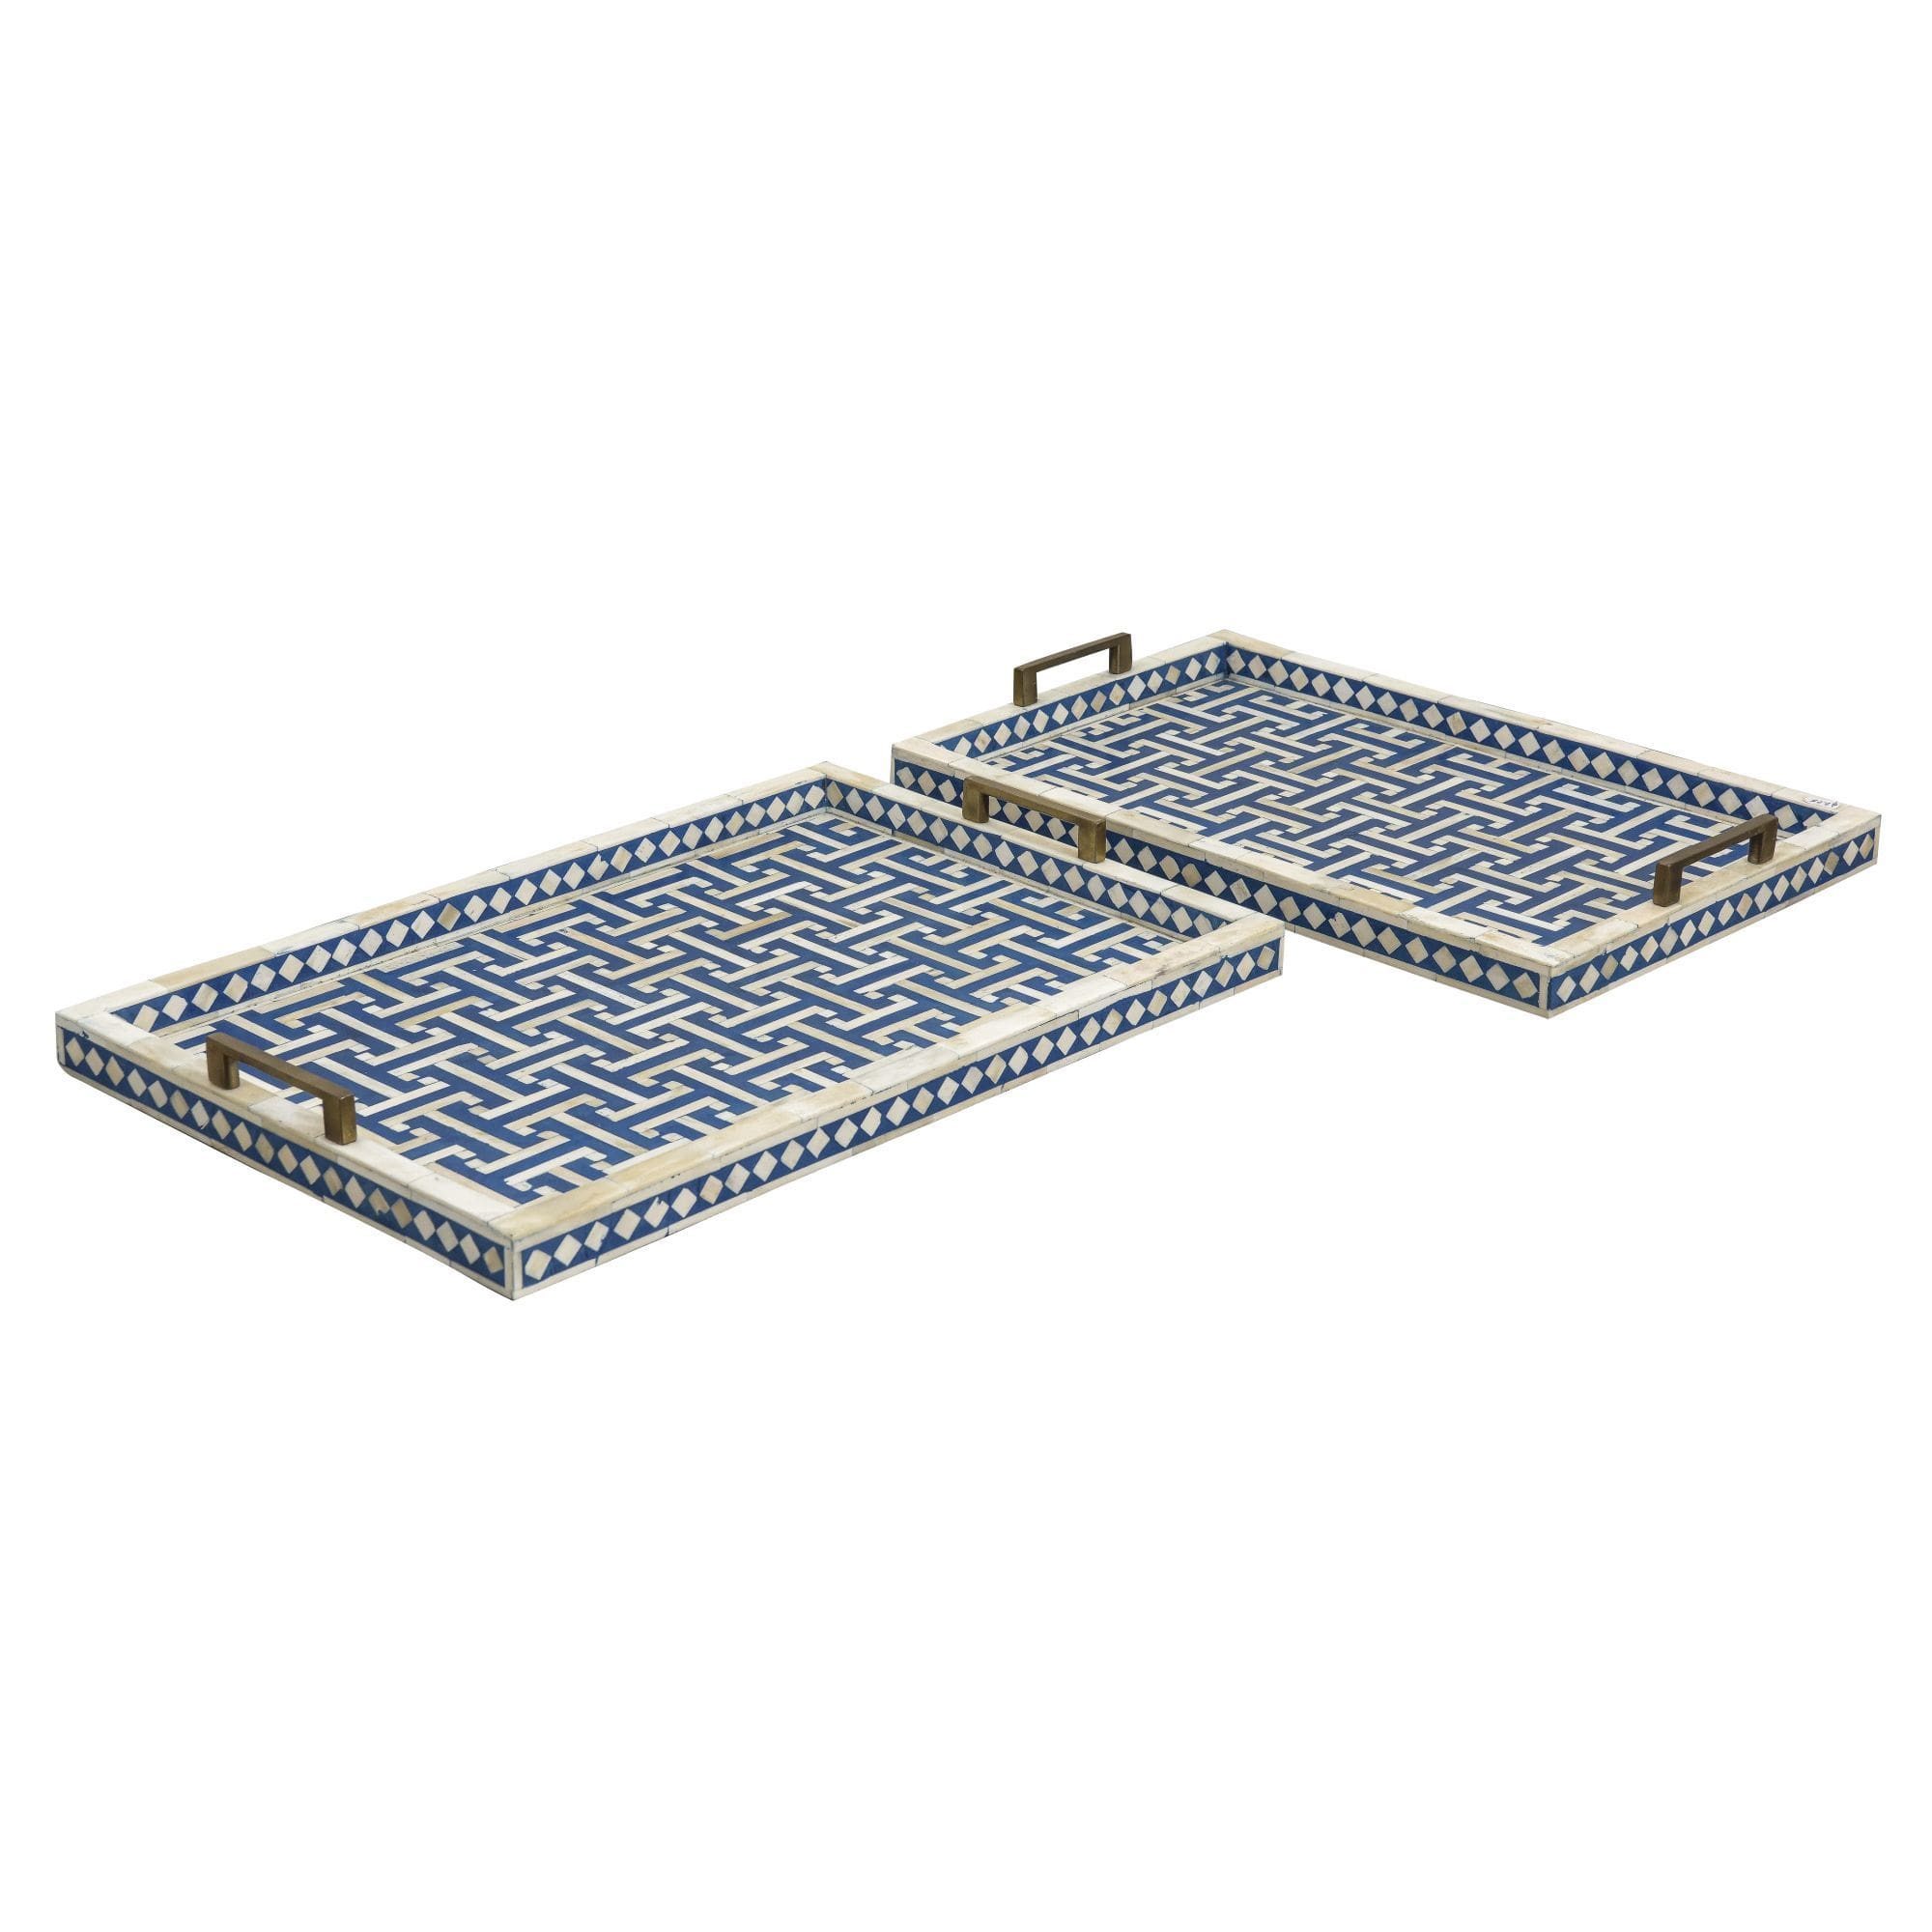 Hacienda Pattern Collection - Trays